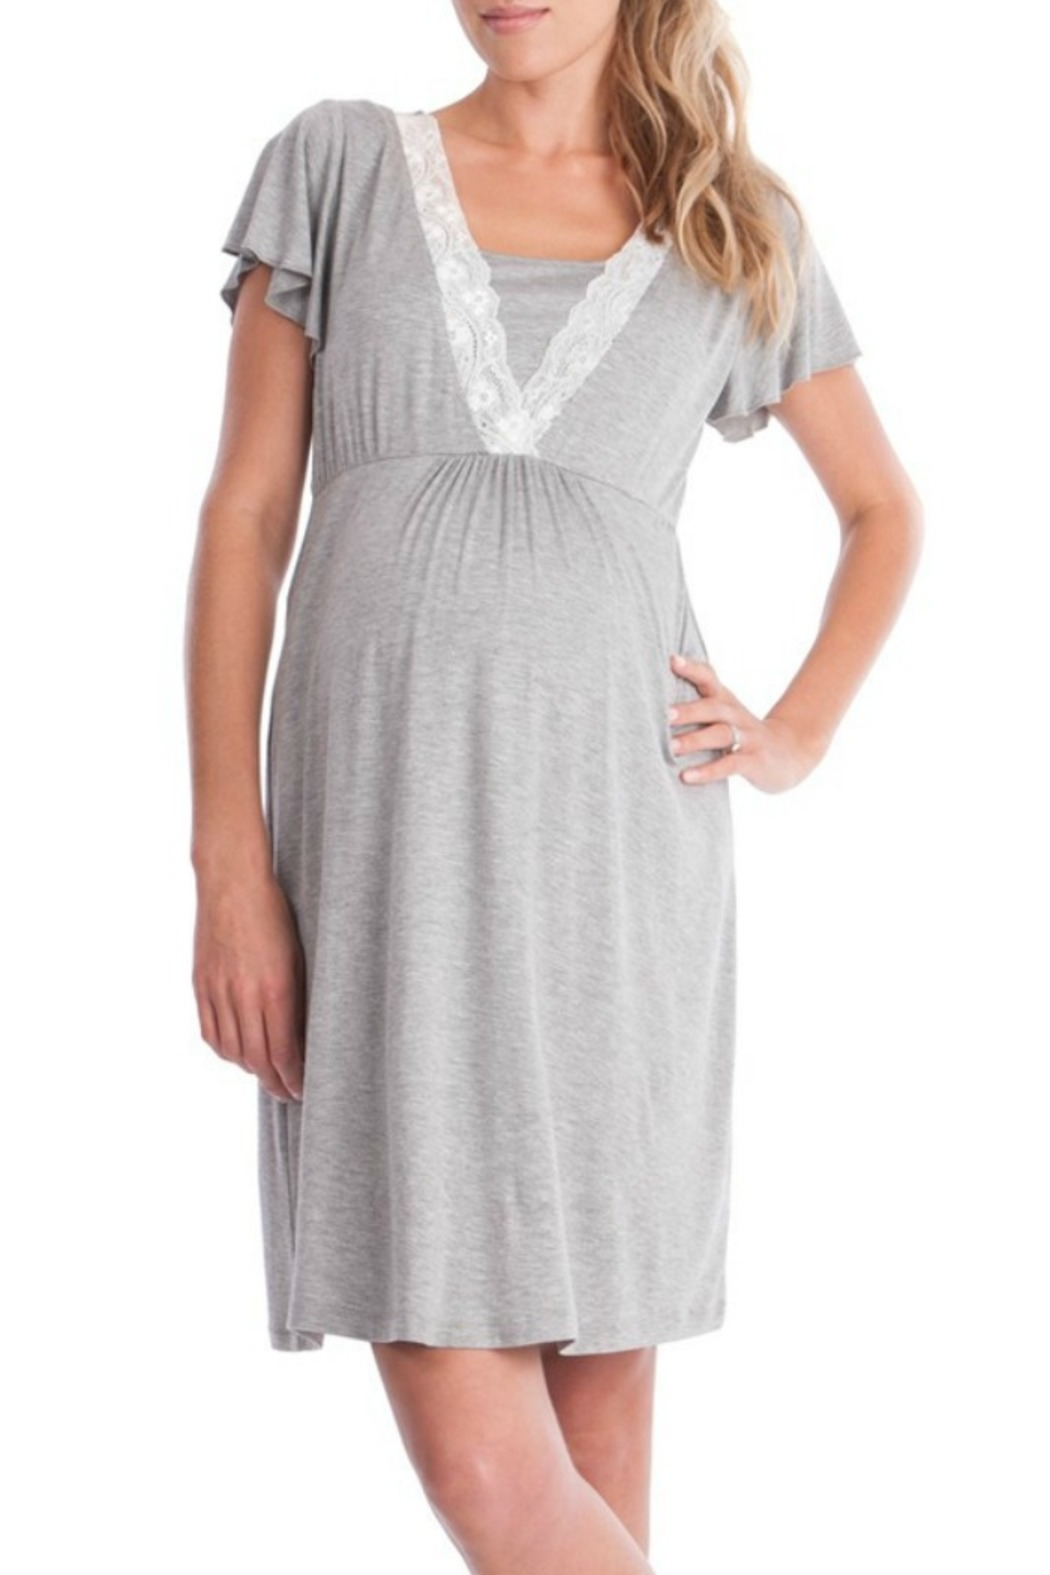 48f70695cc Seraphine Grey Nursing Sleep Gown Robe from Alabama by The Swanky ...